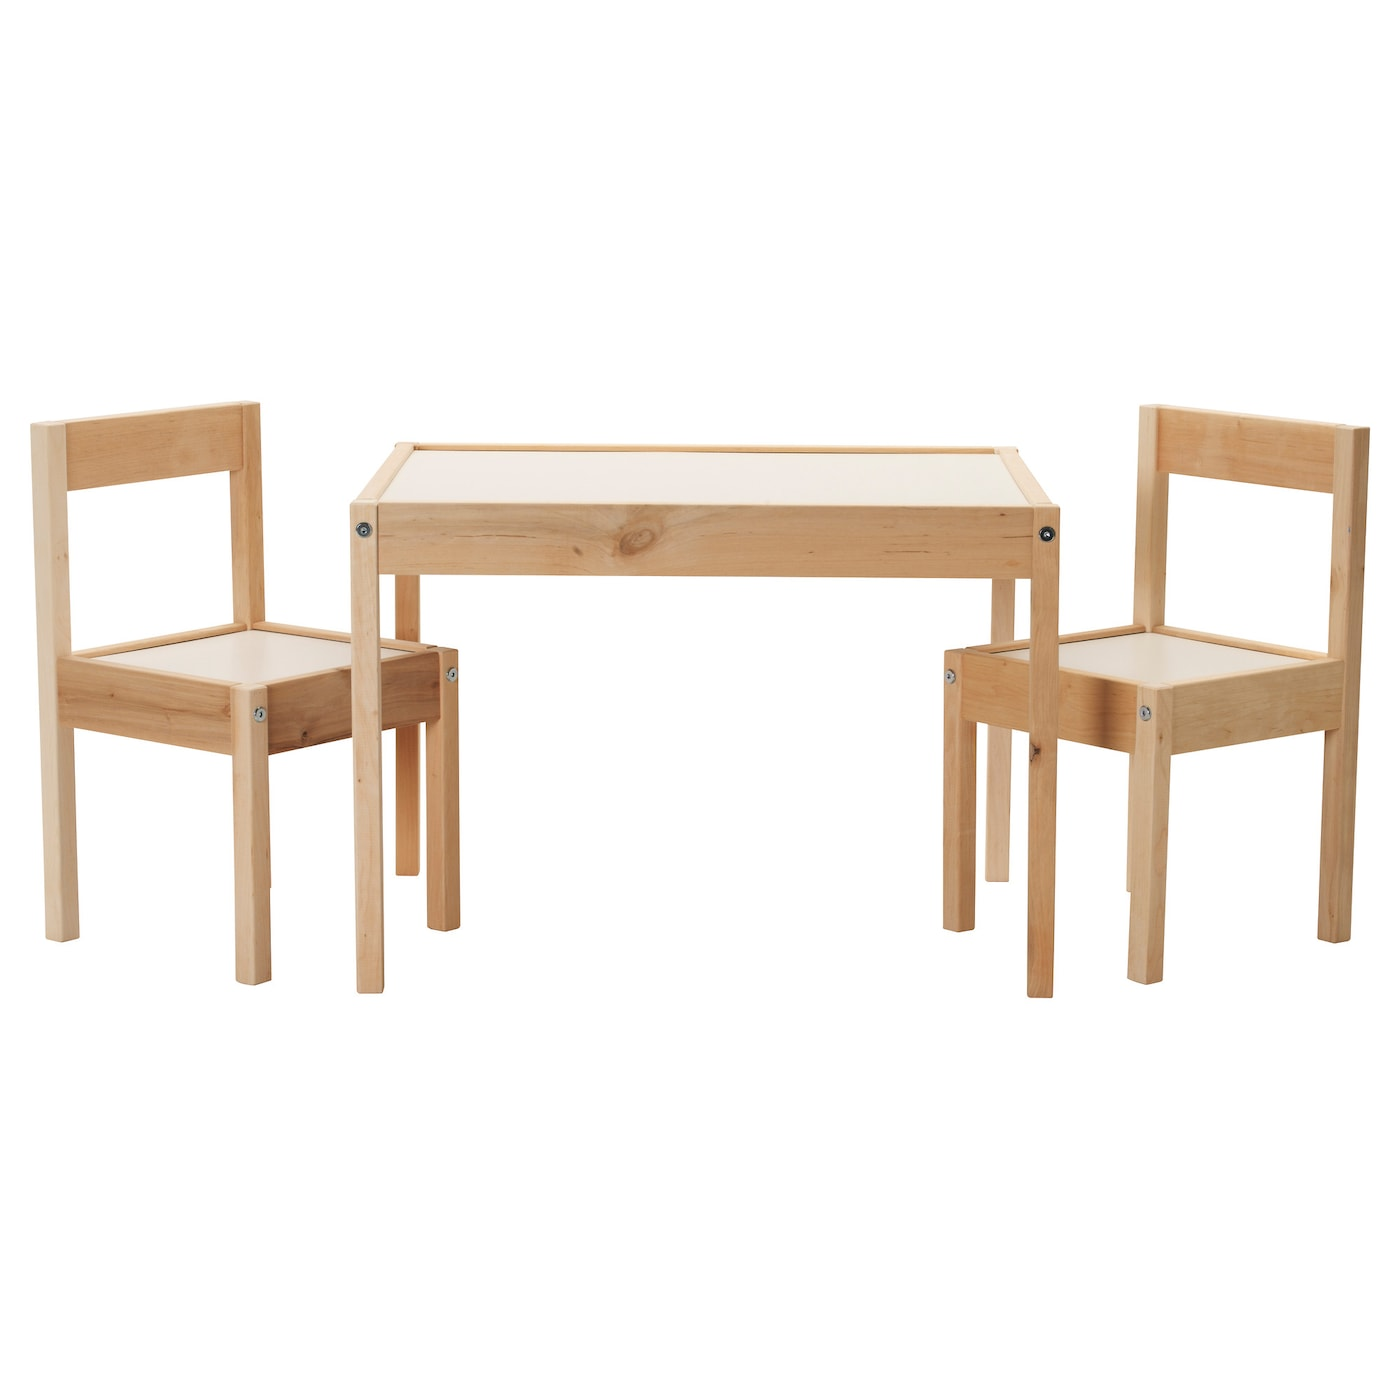 l tt children s table with 2 chairs white pine ikea rh ikea com ikea childrens table and chairs ireland ikea childrens table and chairs canada